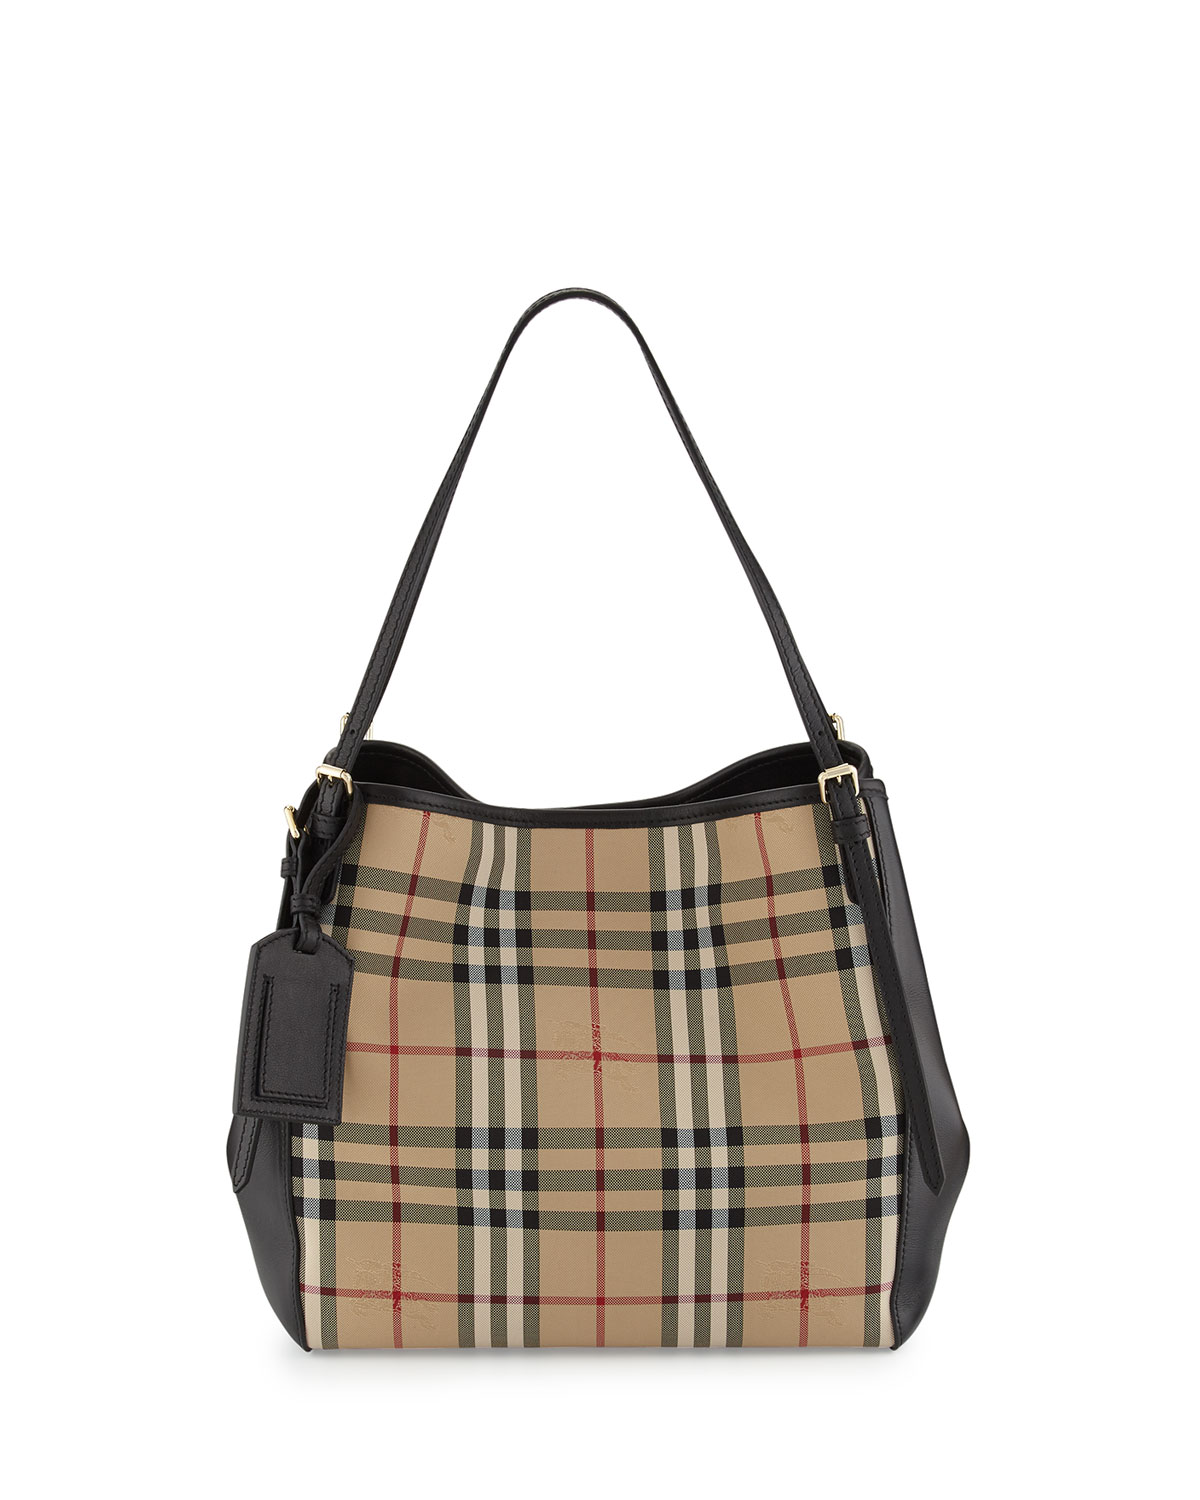 406465abf7 Burberry Small Canter in Horseferry Check and Leather Hobo Bag, Black